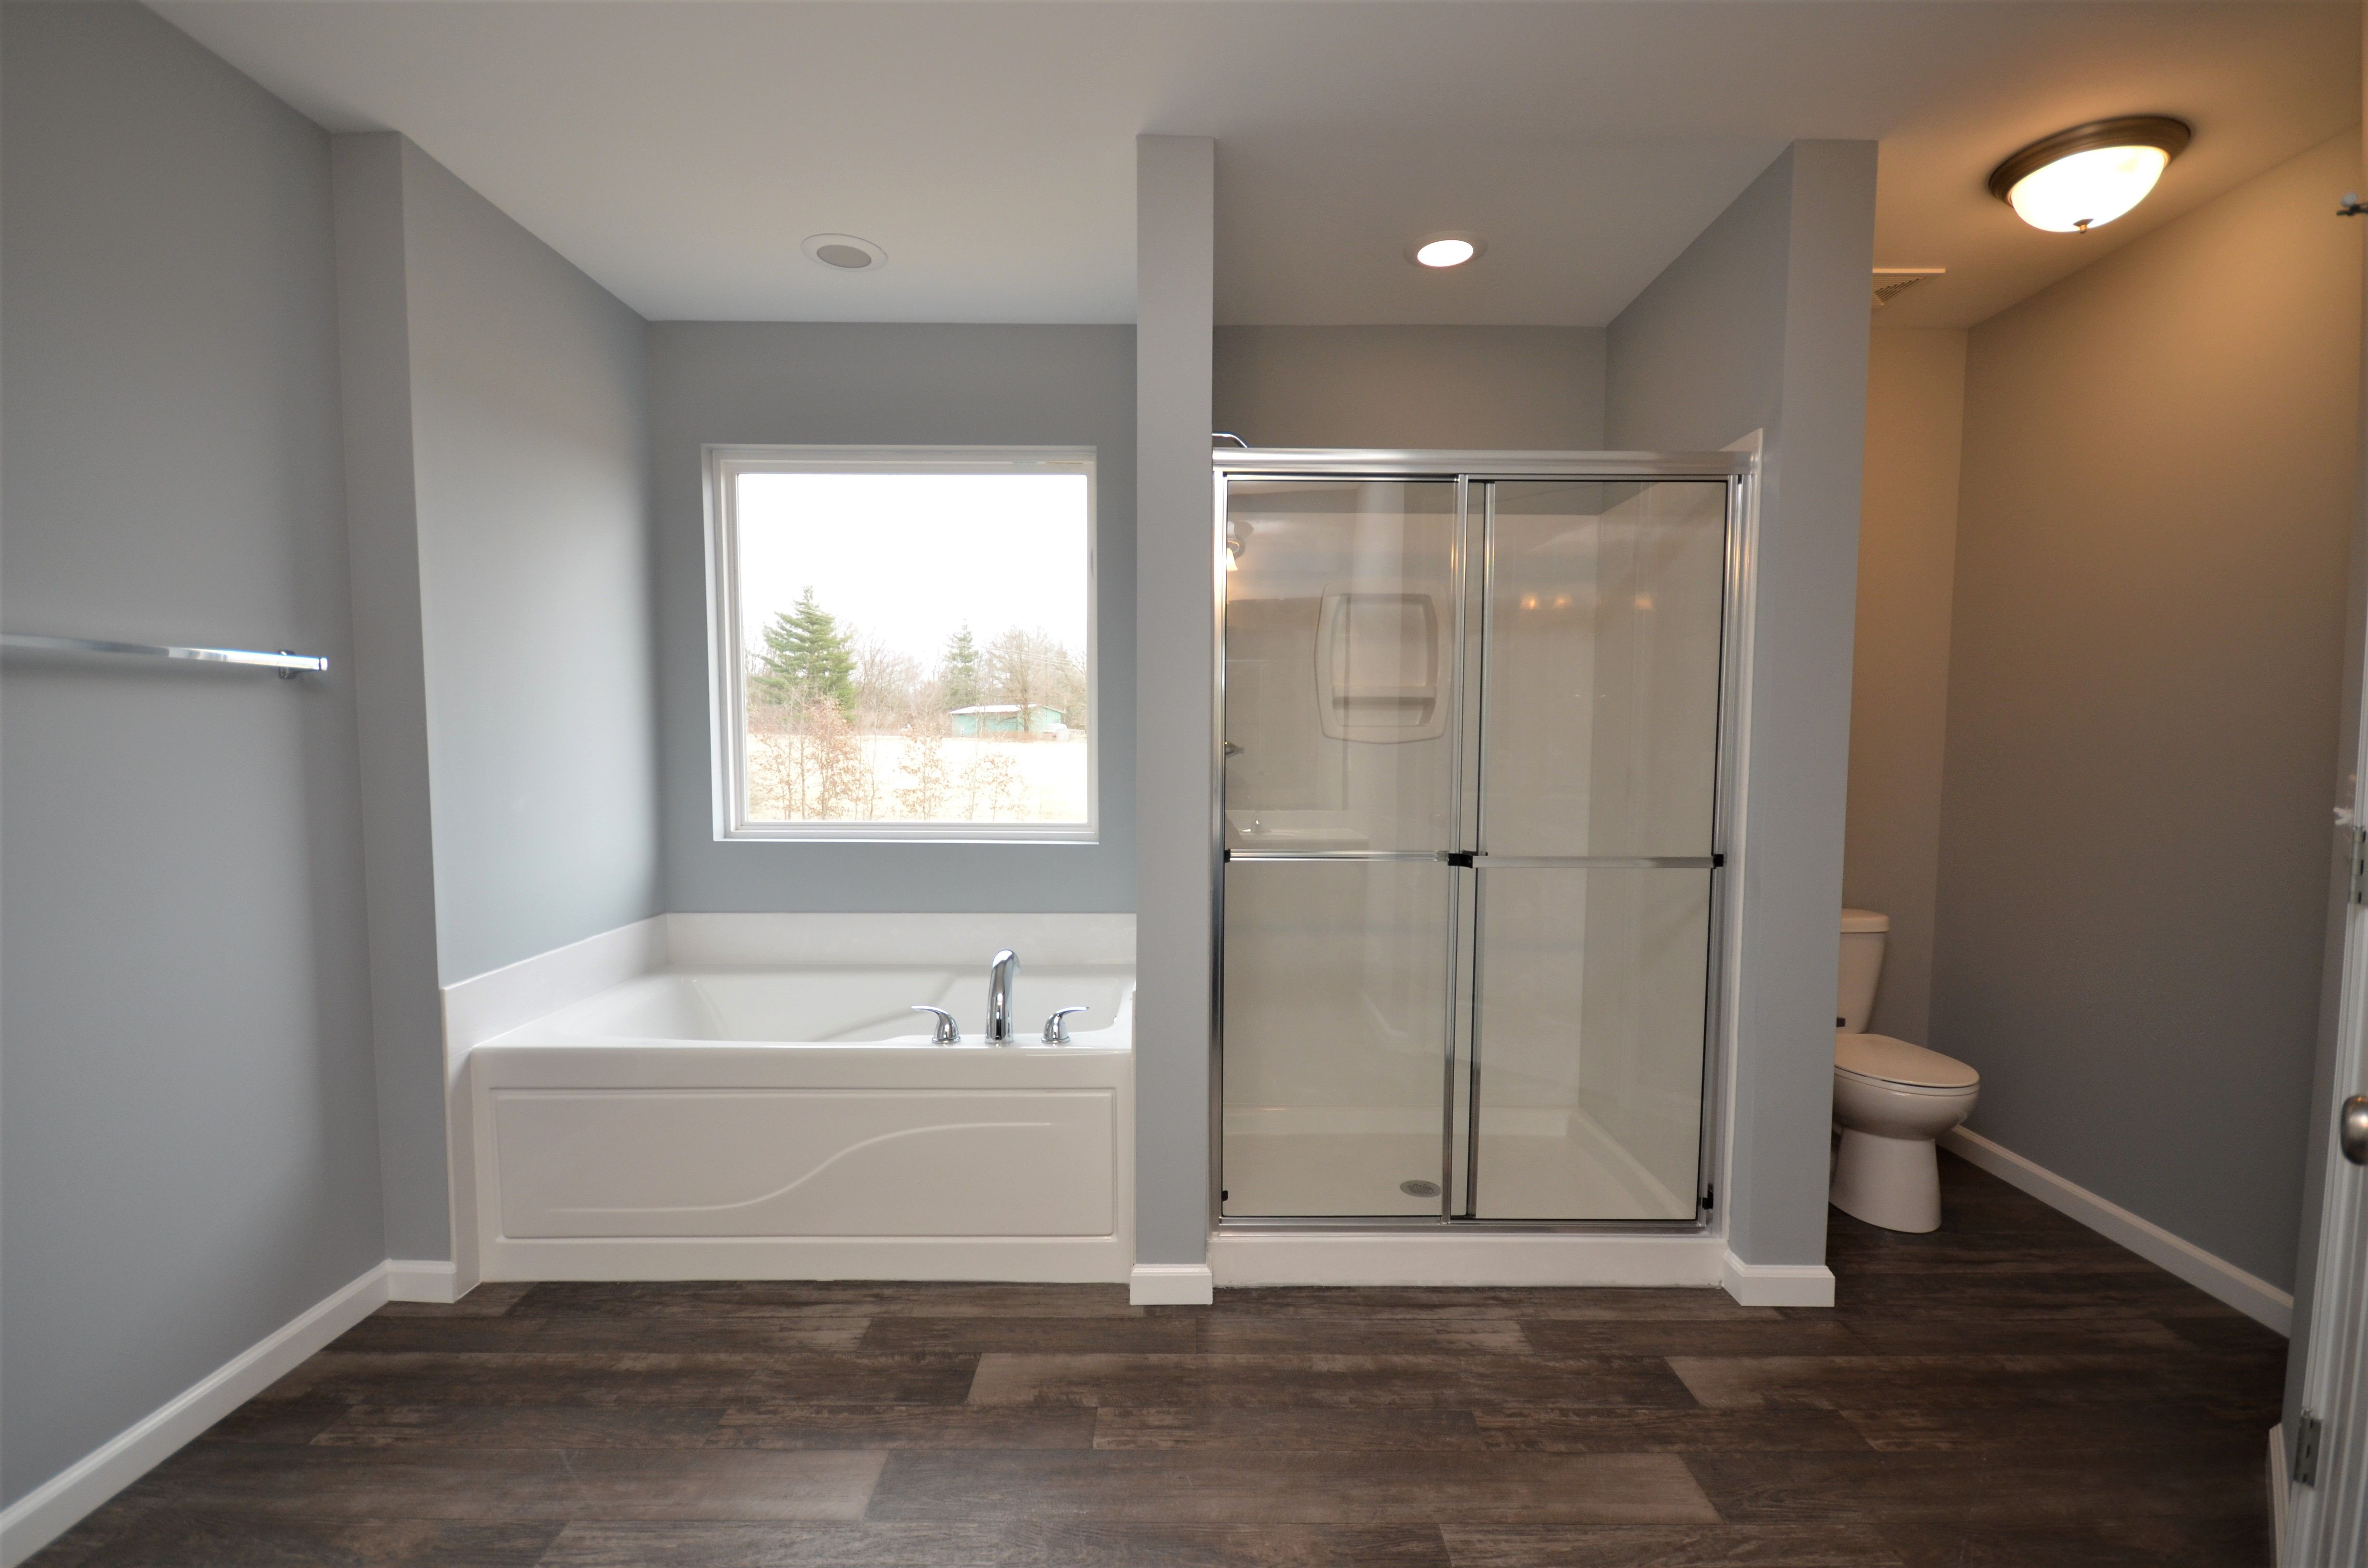 Bathroom featured in The Hermitage By Cannon Builders, Inc.  in St. Louis, MO